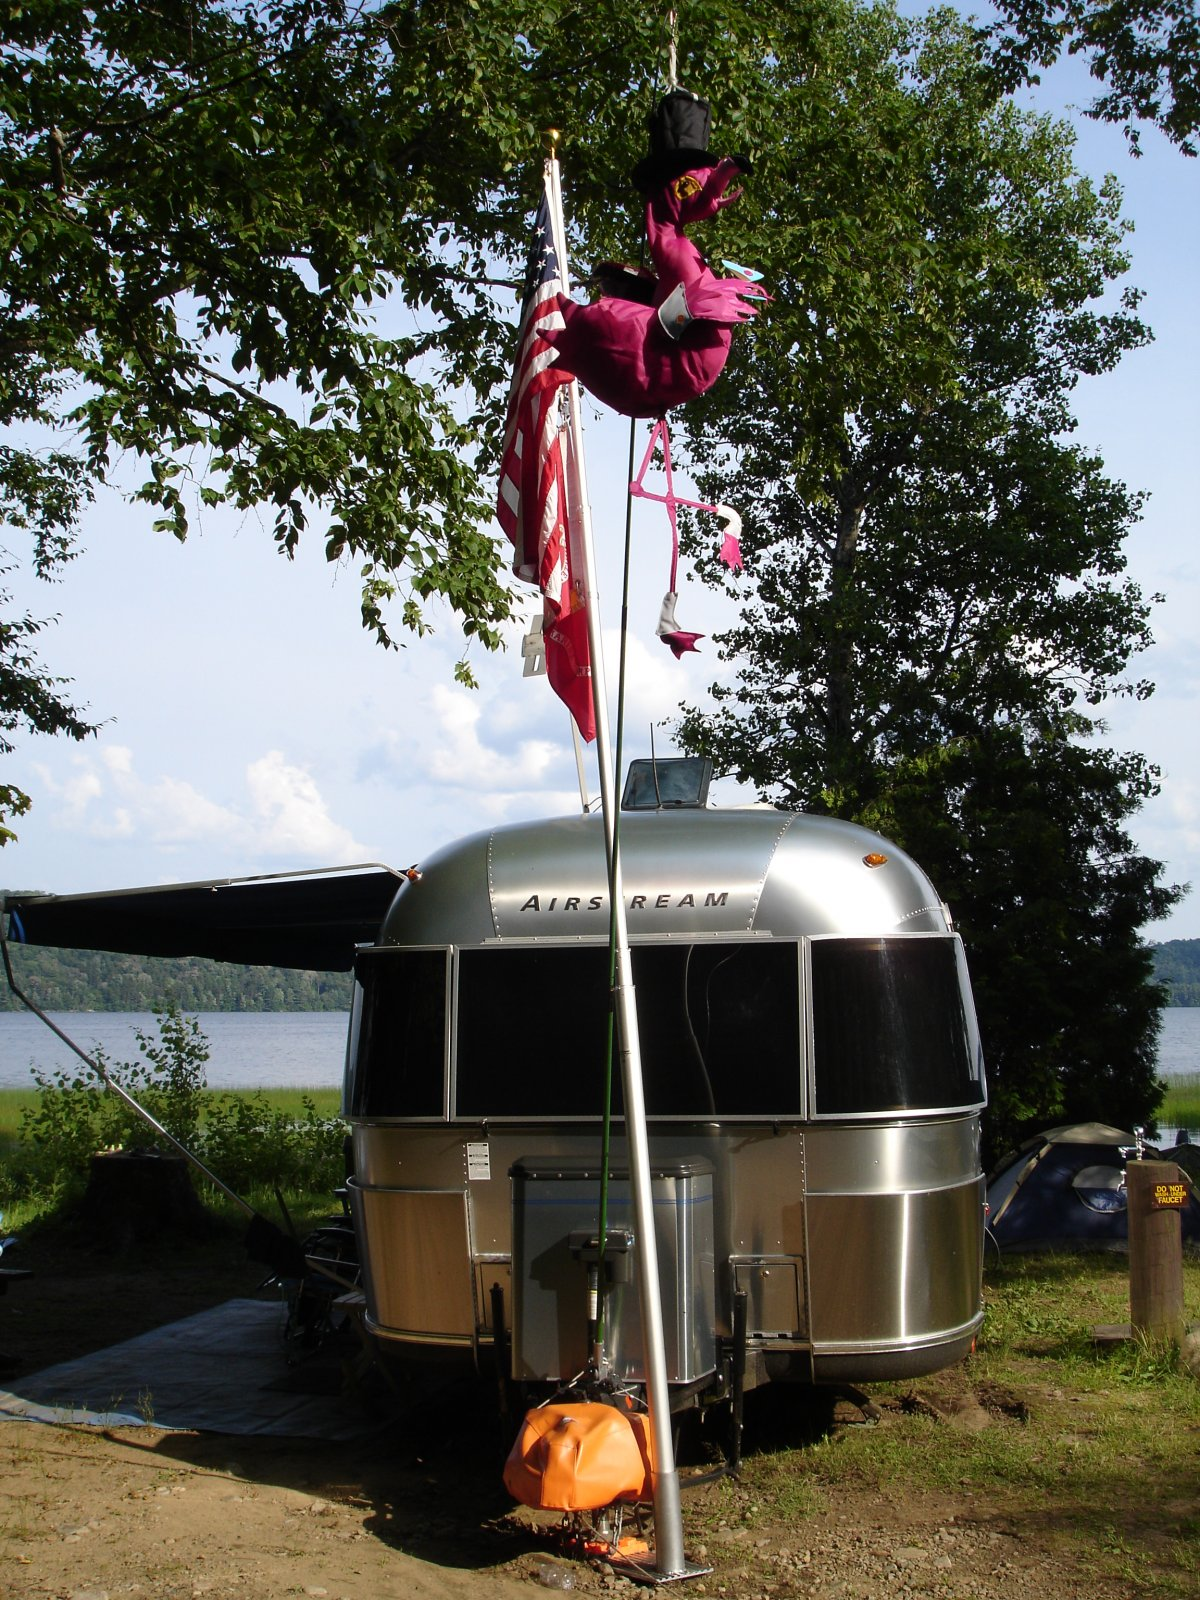 Click image for larger version  Name:PISECO LAKE CAMPING JULY 2008 186.jpg Views:83 Size:521.6 KB ID:75775